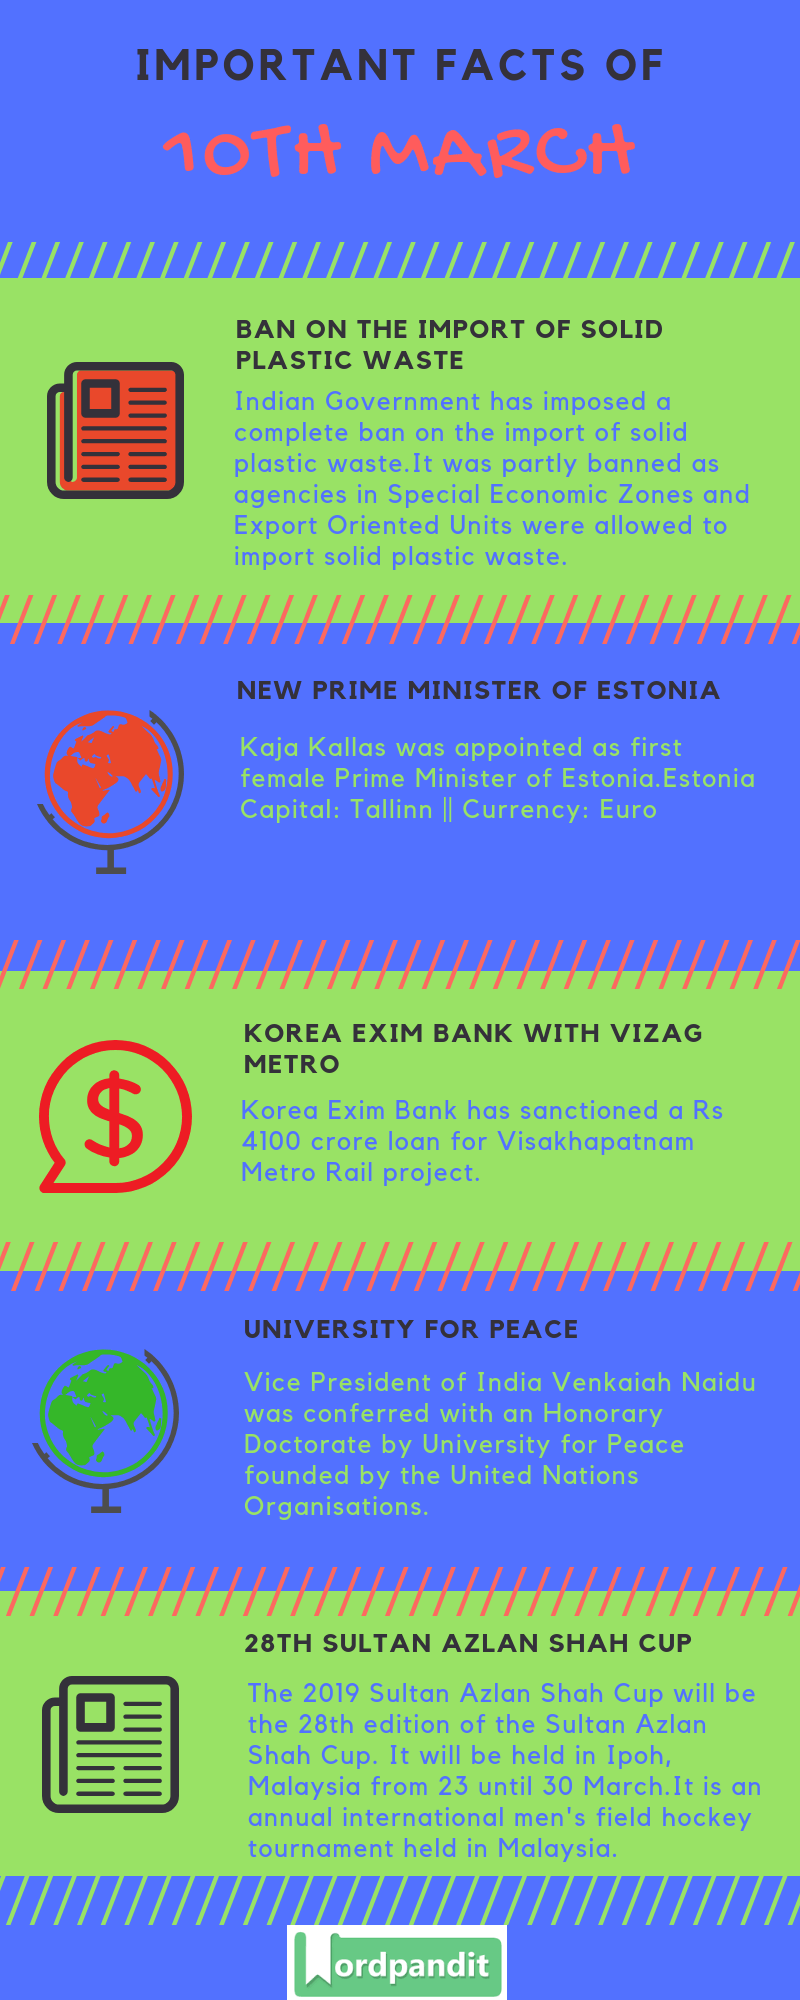 Daily Current Affairs 10 March 2019 Current Affairs Quiz 10 March 2019 Current Affairs Infographic